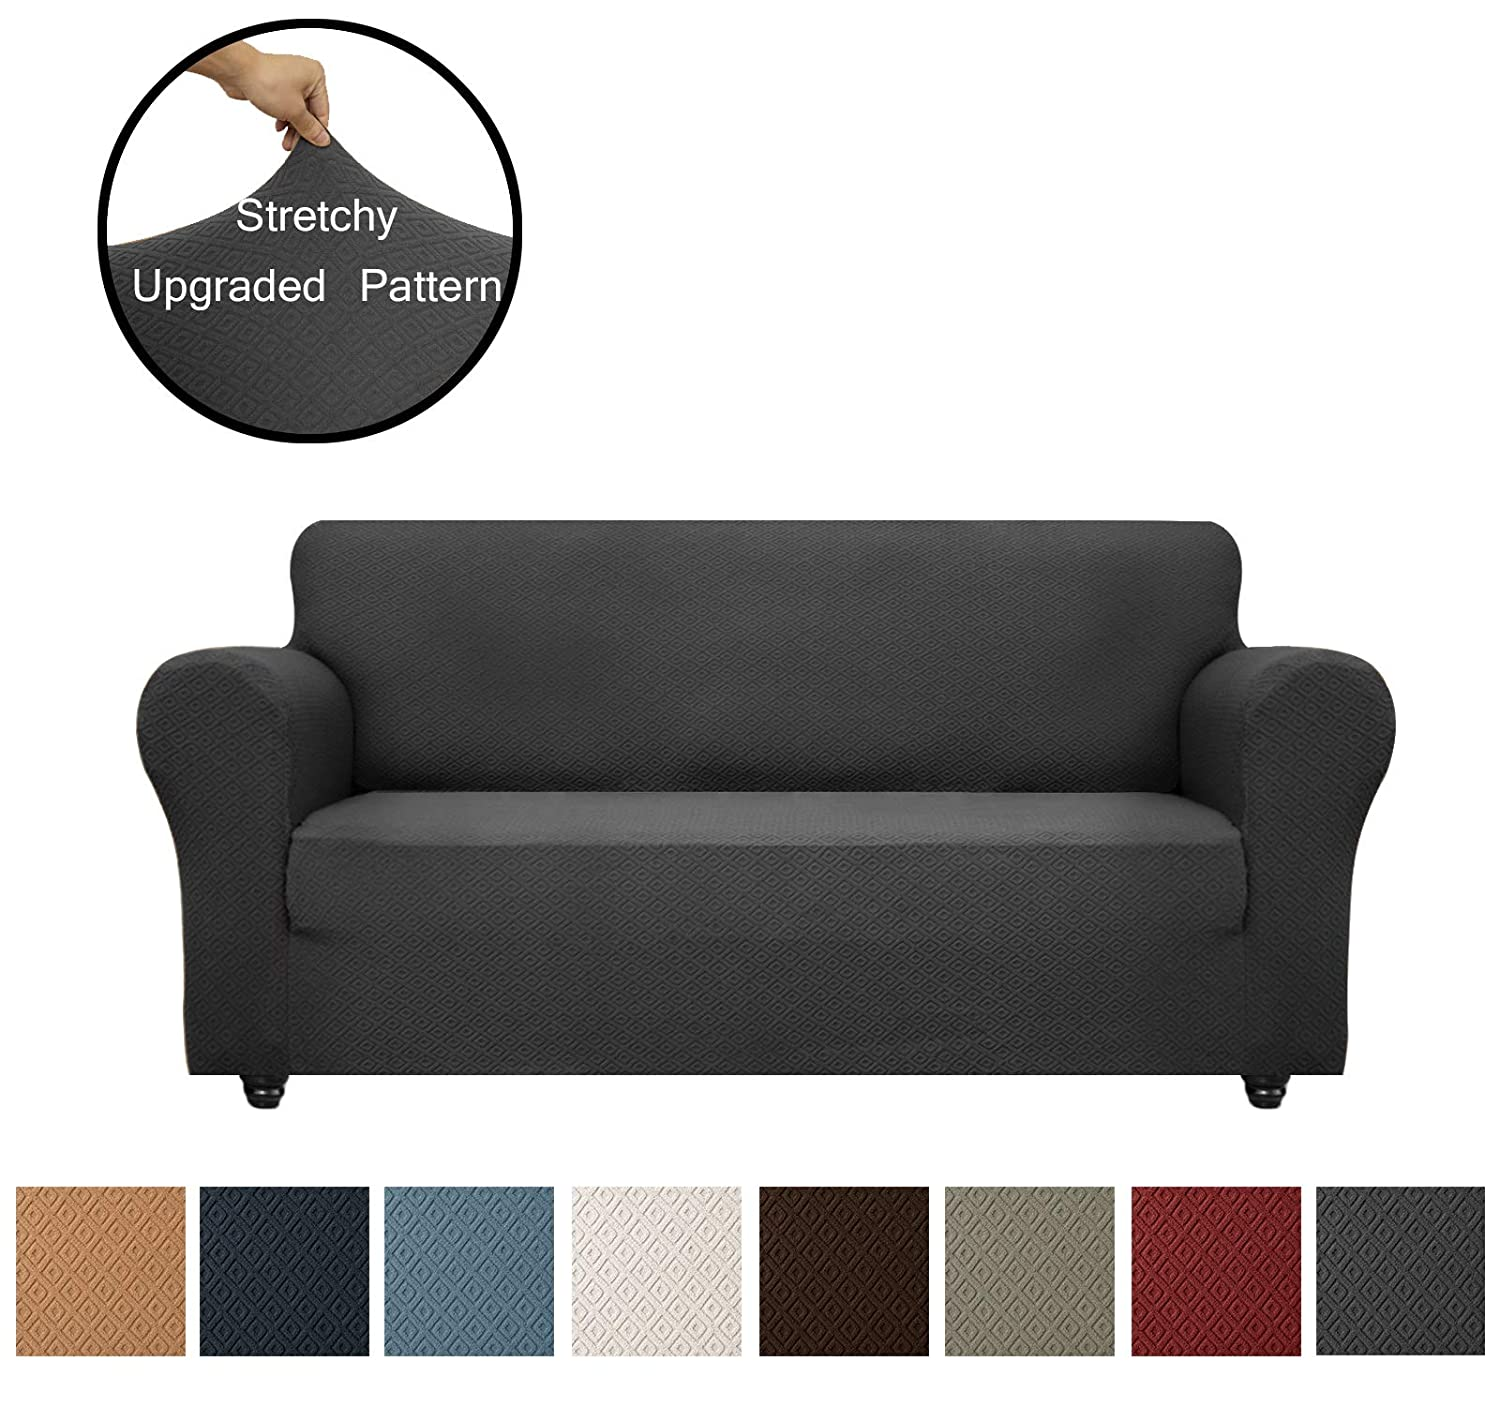 Obytex Sofa Cover High Stretch 1-Piece Premium Slipcovers Furniture Protectors Couch Covers with Elastic Bottom for Both Leather and Cloth Sofa